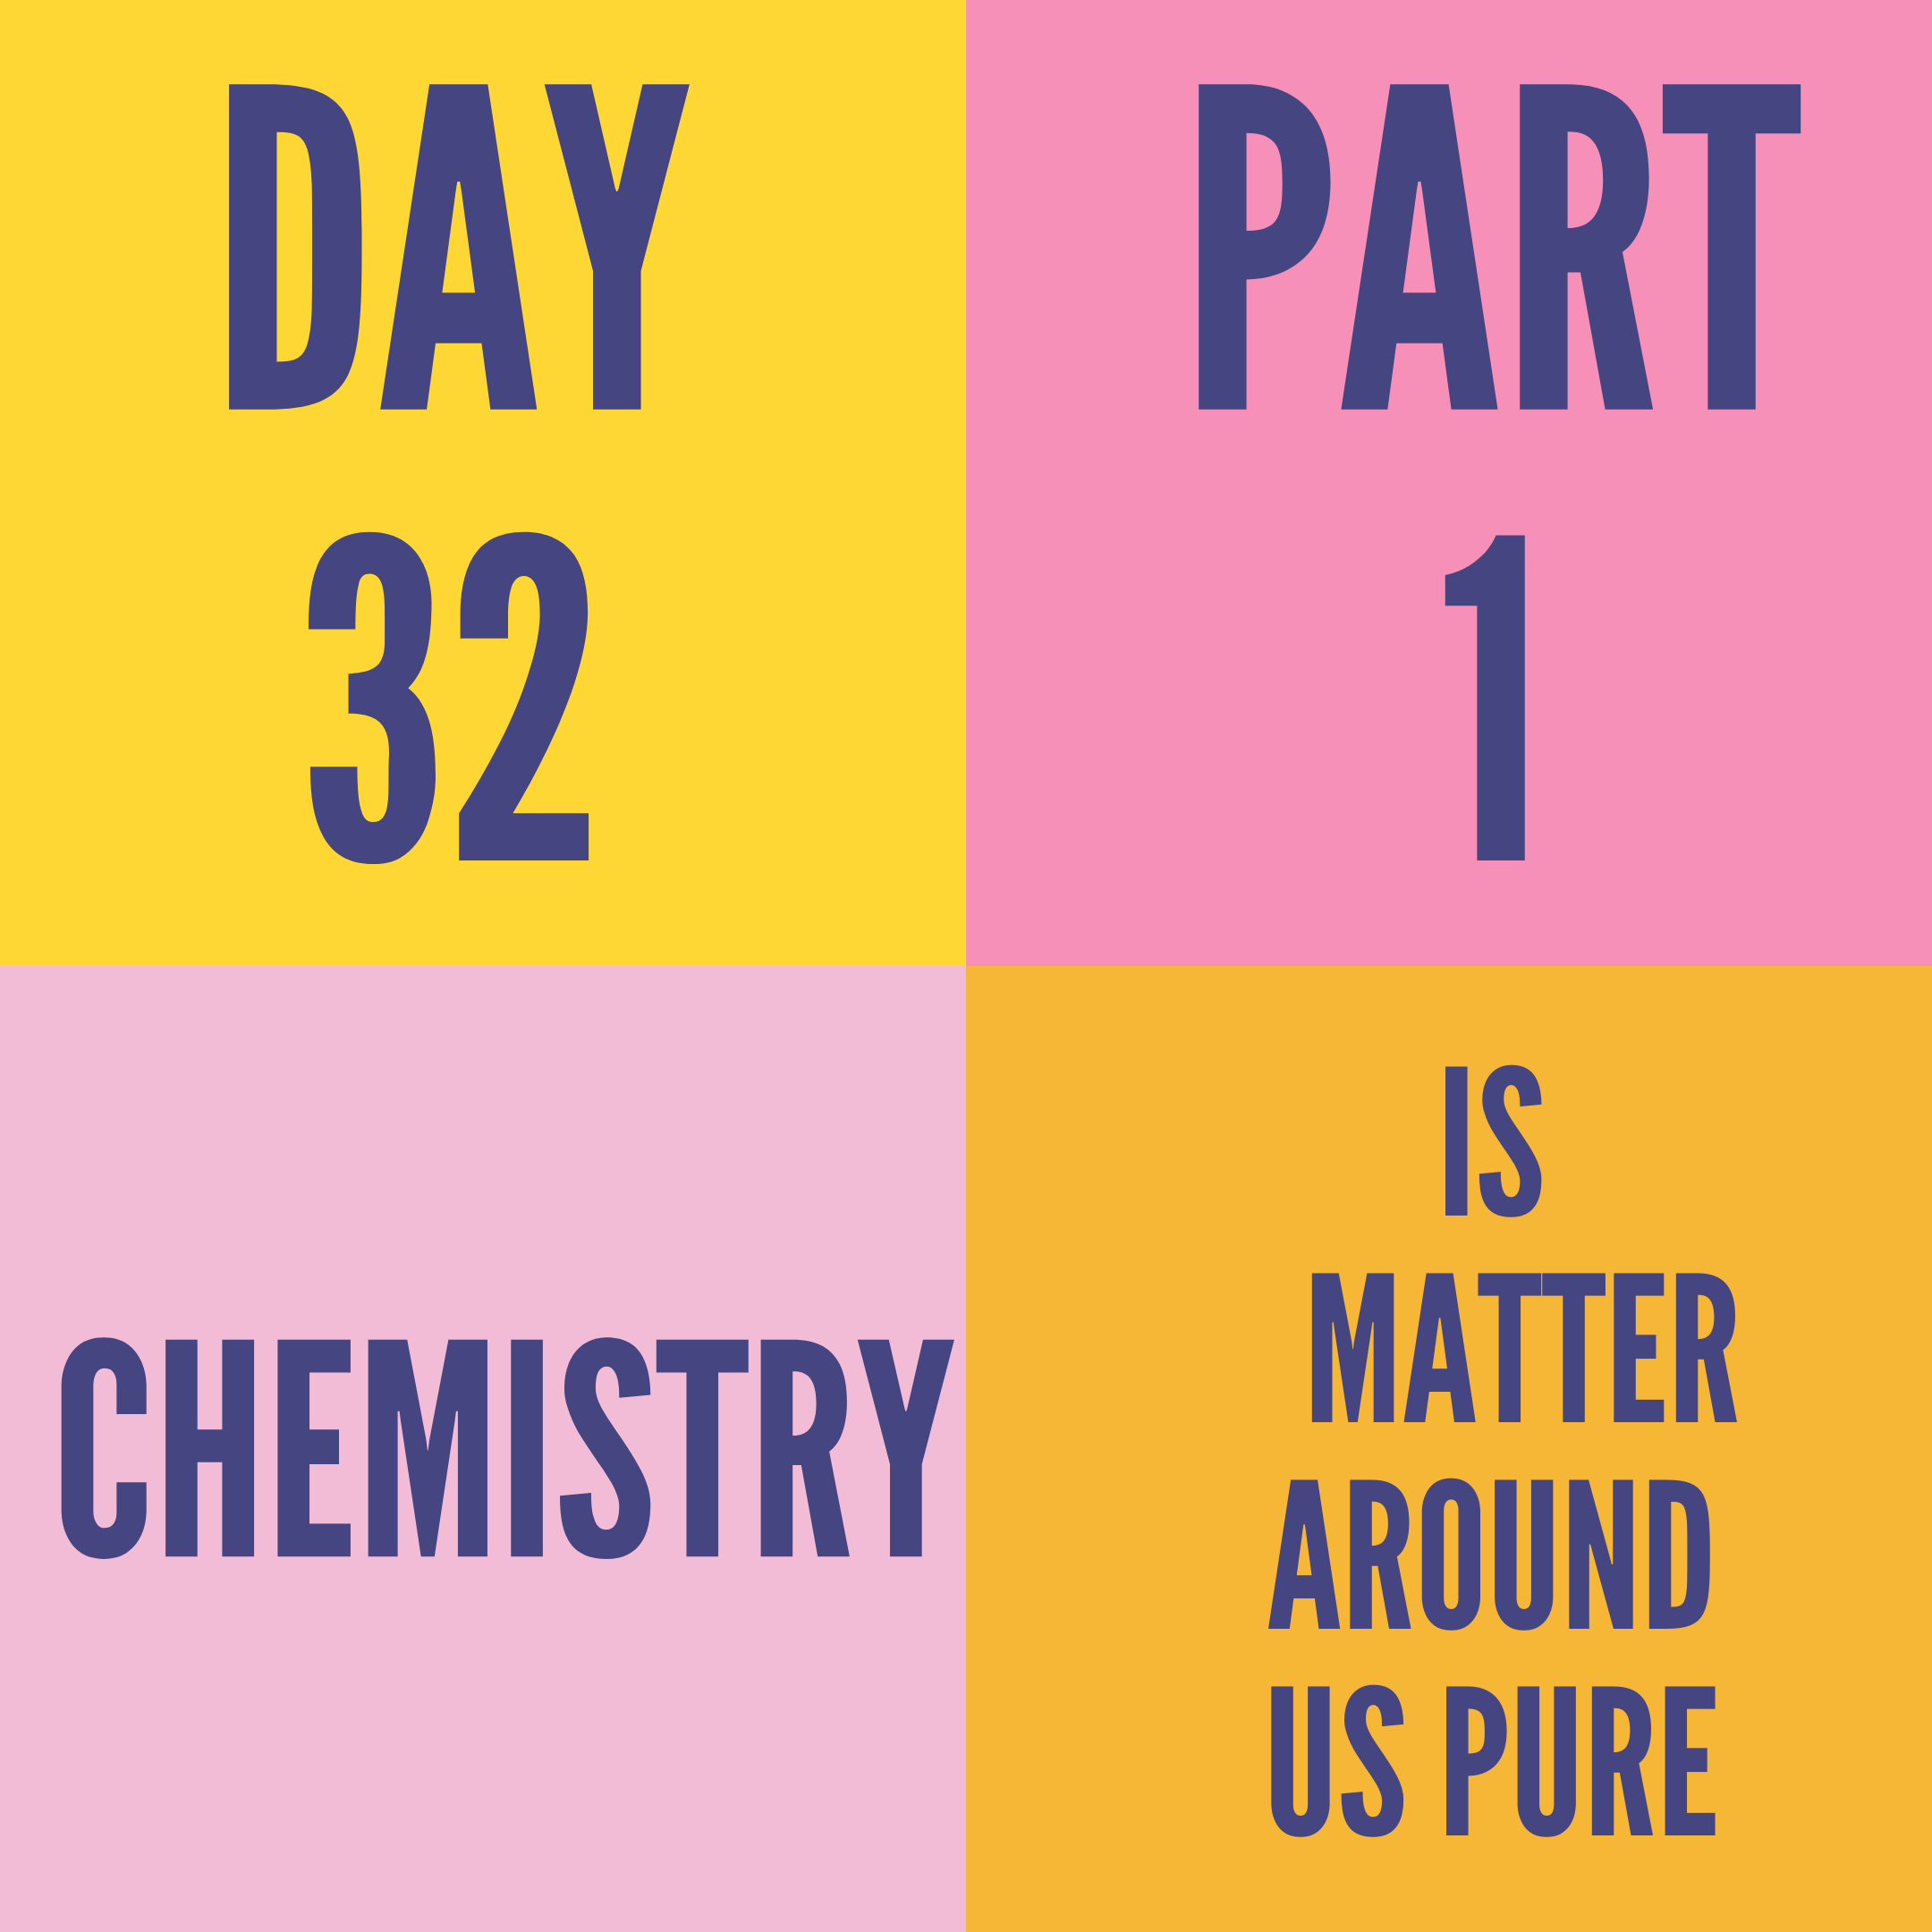 DAY-32 PART-1 IS MATTER AROUND US PURE